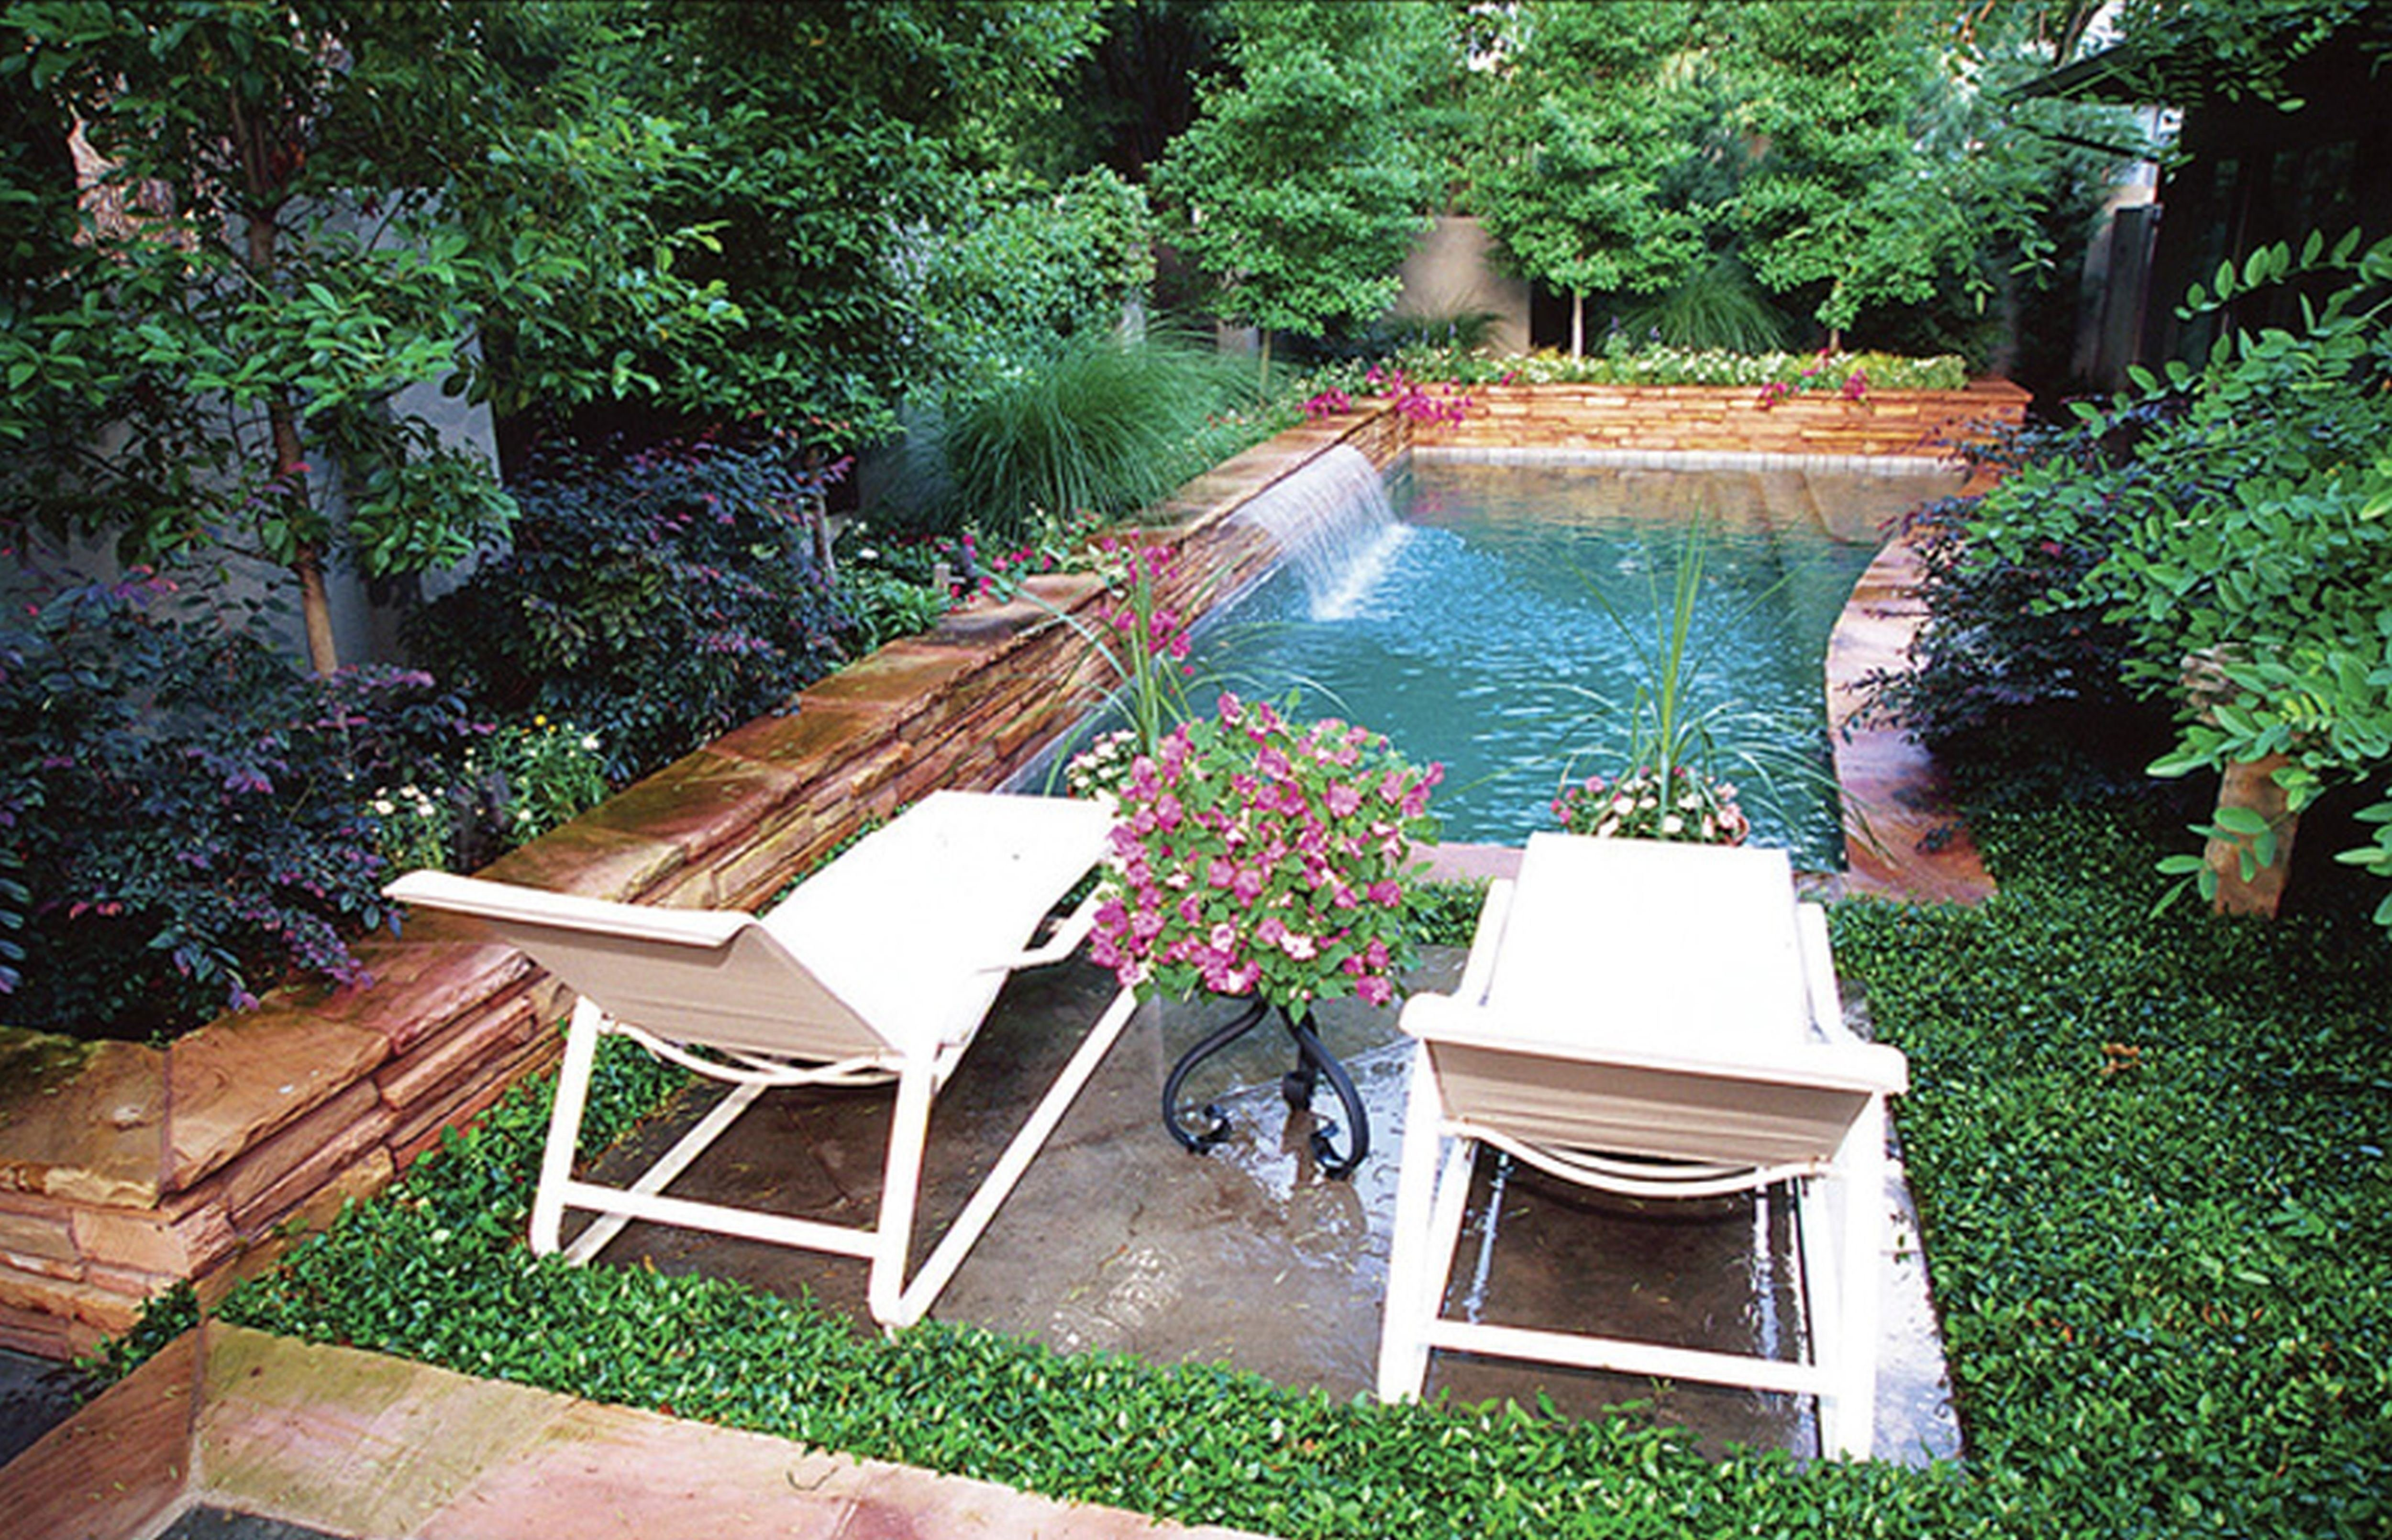 10 Awesome Backyard Ideas For Small Yards garden ideas on a budget best of backyard ideas for small yards a 1 2020